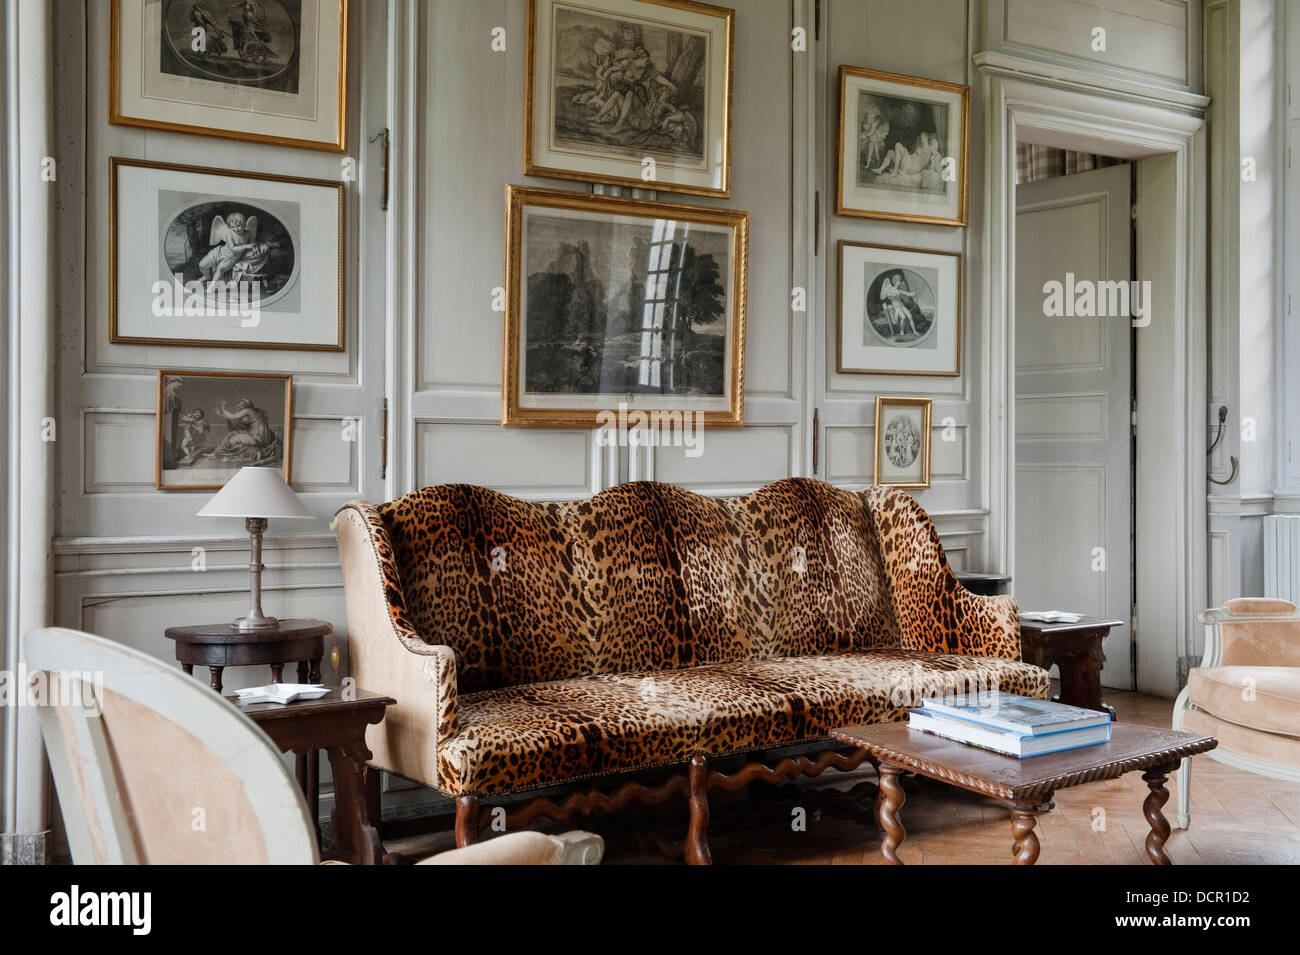 Antique French Sofa Upholstered In Leopard Print Fabric In Living Room With  Wooden Wall Paneling